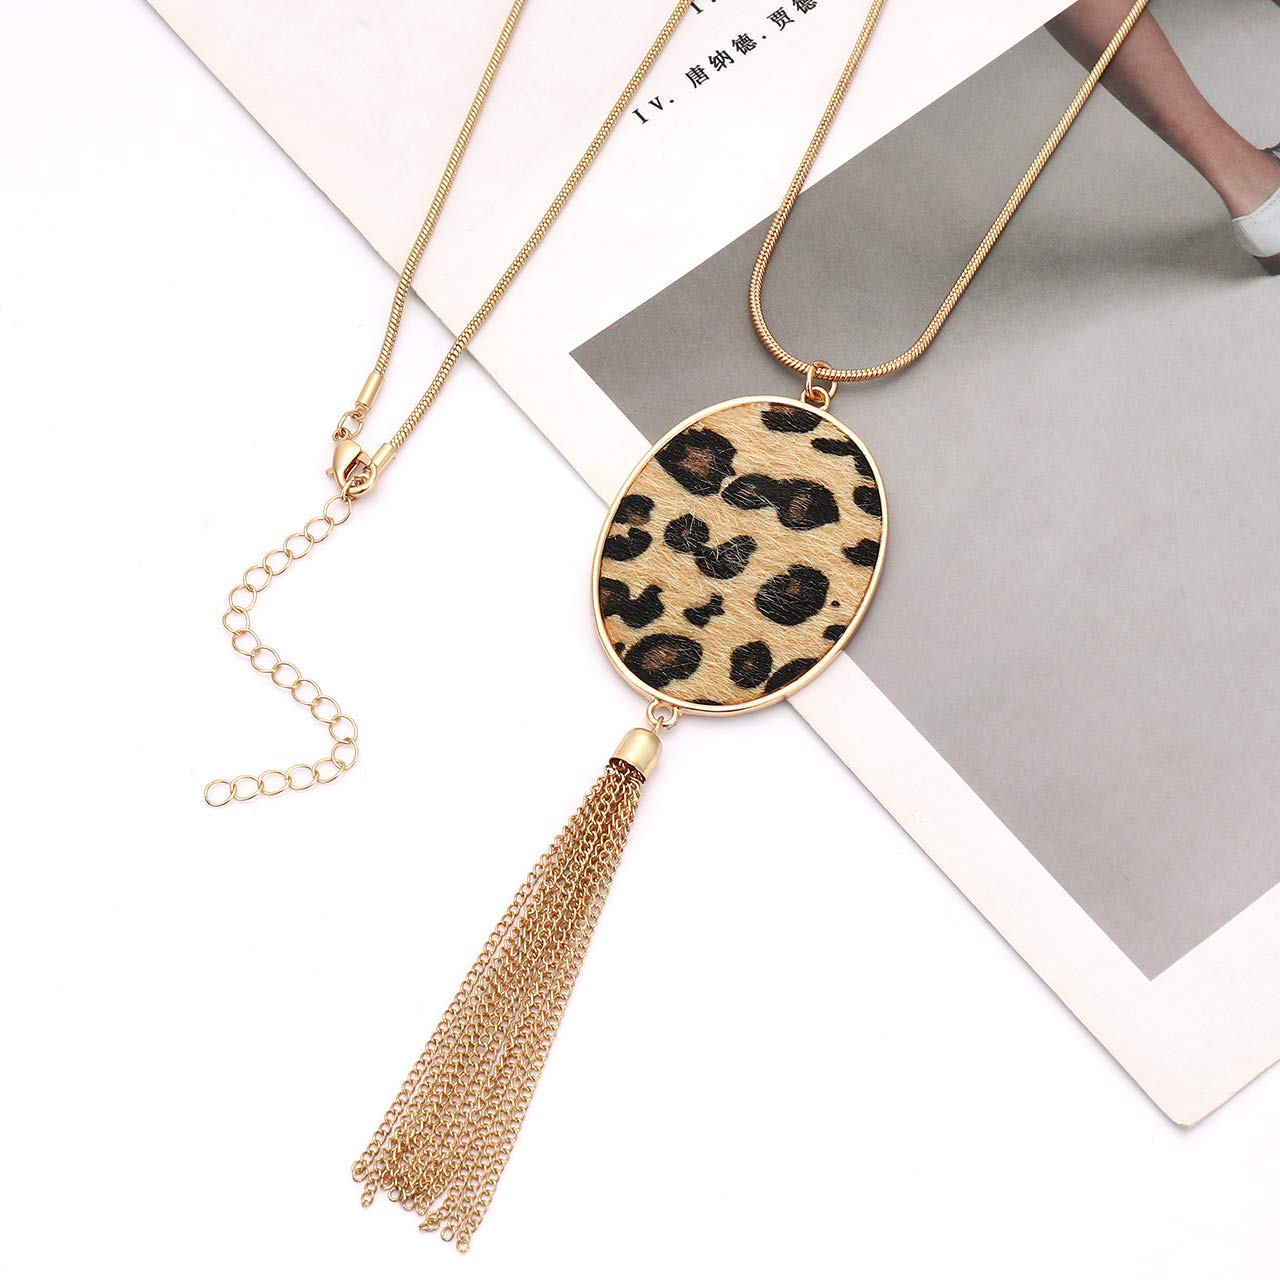 Long Necklaces for Women Statement Leopard Snakeskin Fur Pattern Necklace Oval Leather Pendant Necklaces Jewelry